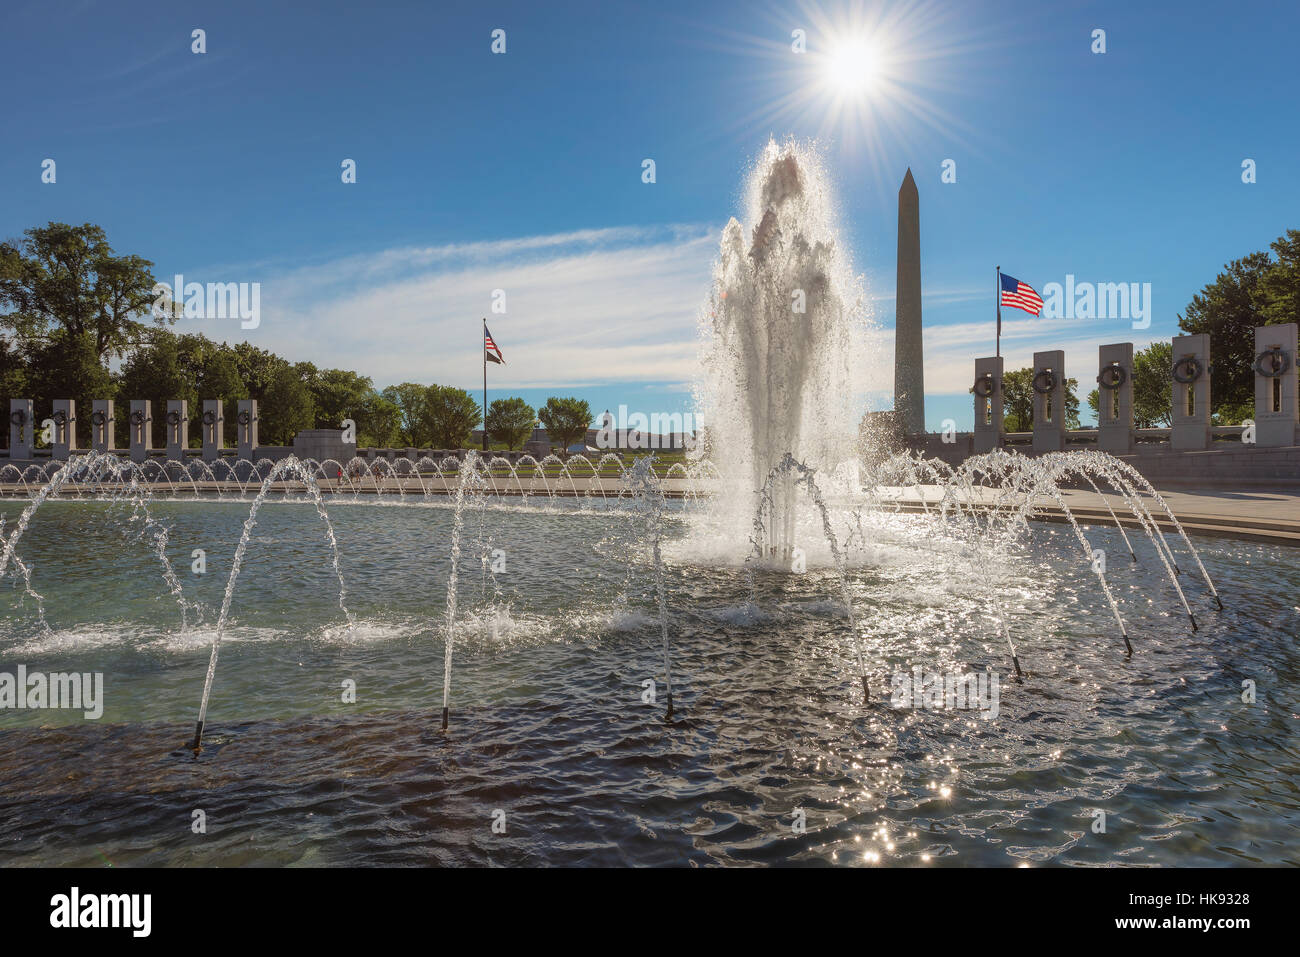 The fountains of the War memorial and the Washington Monument on a summer morning in Washington DC. - Stock Image